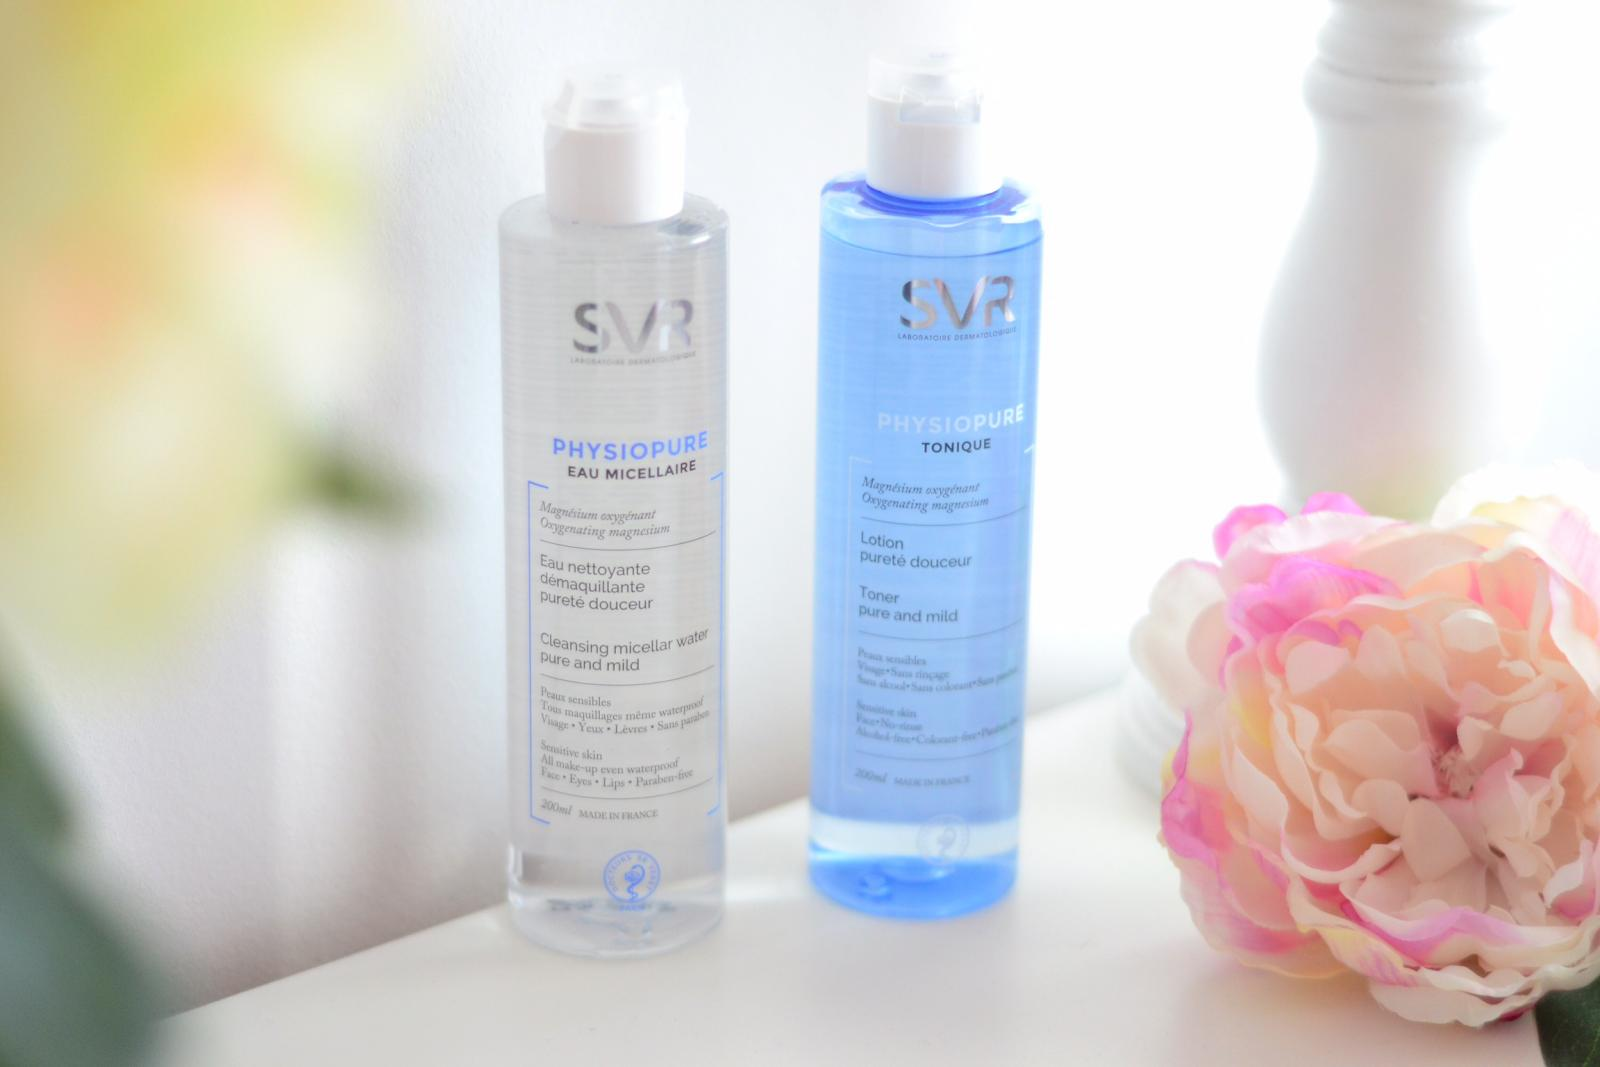 SVR-Physiopure-Eau-Micellaire-Review